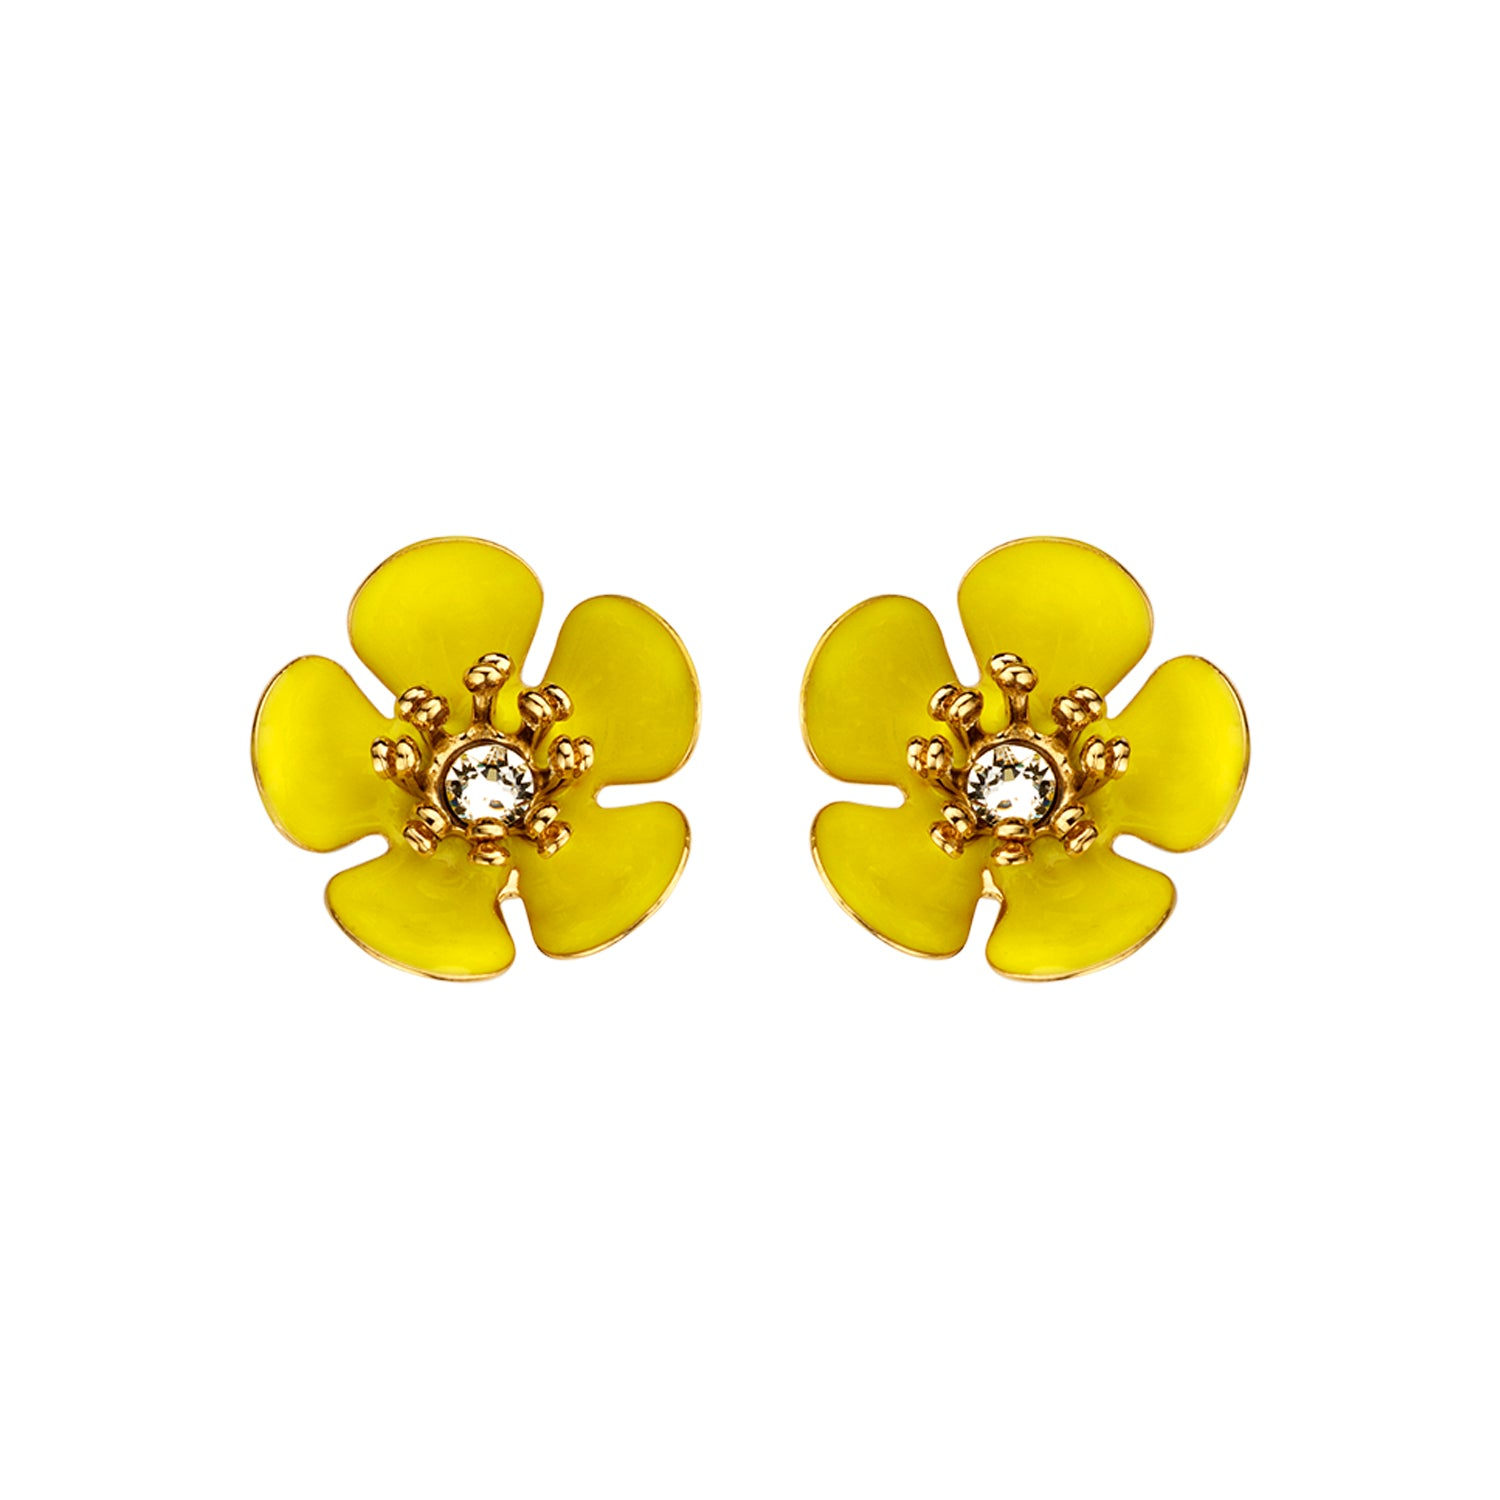 Gina mini enamel flower yellow  earrings - Souvenirs de Pomme